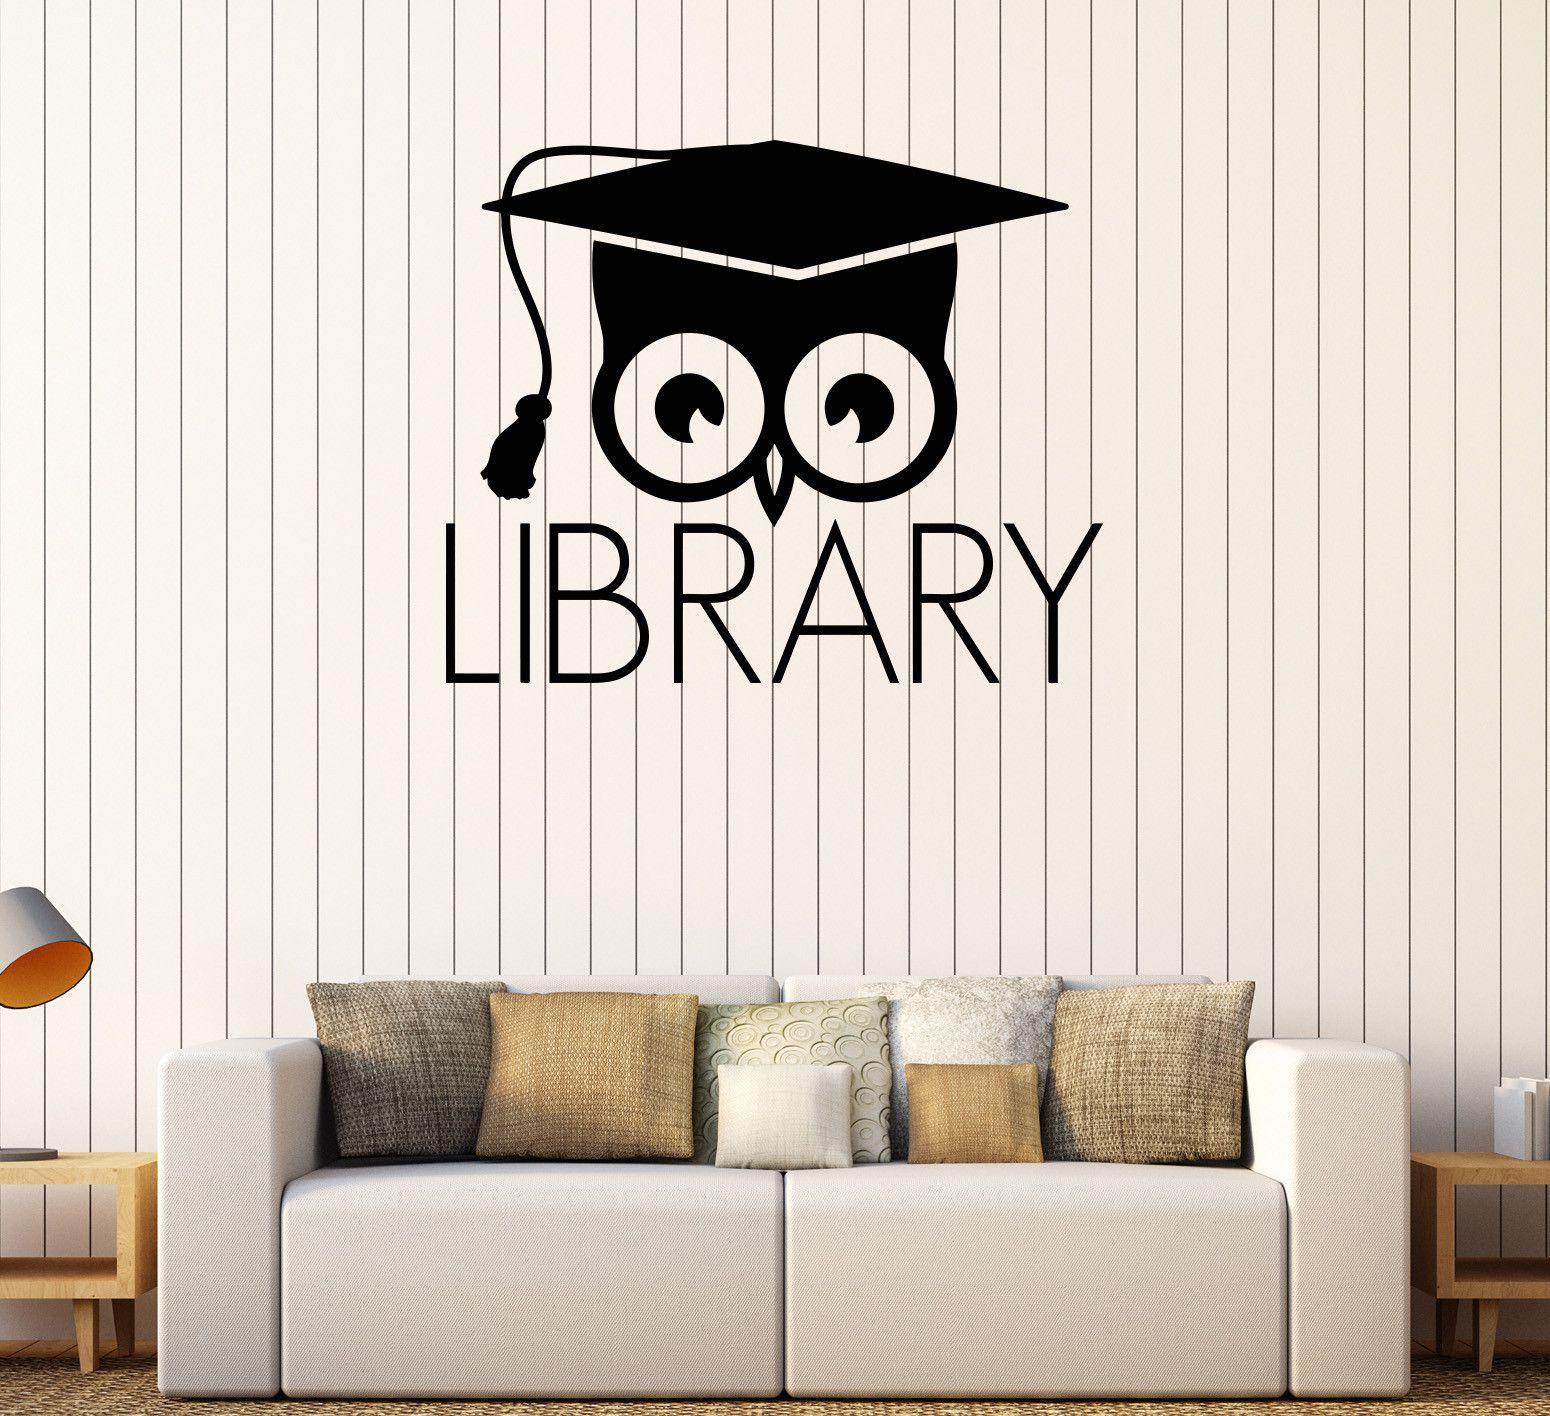 Vinyl Wall Decal Library Books Bookworm Academic Owl Scientific - Vinyl wall decals books